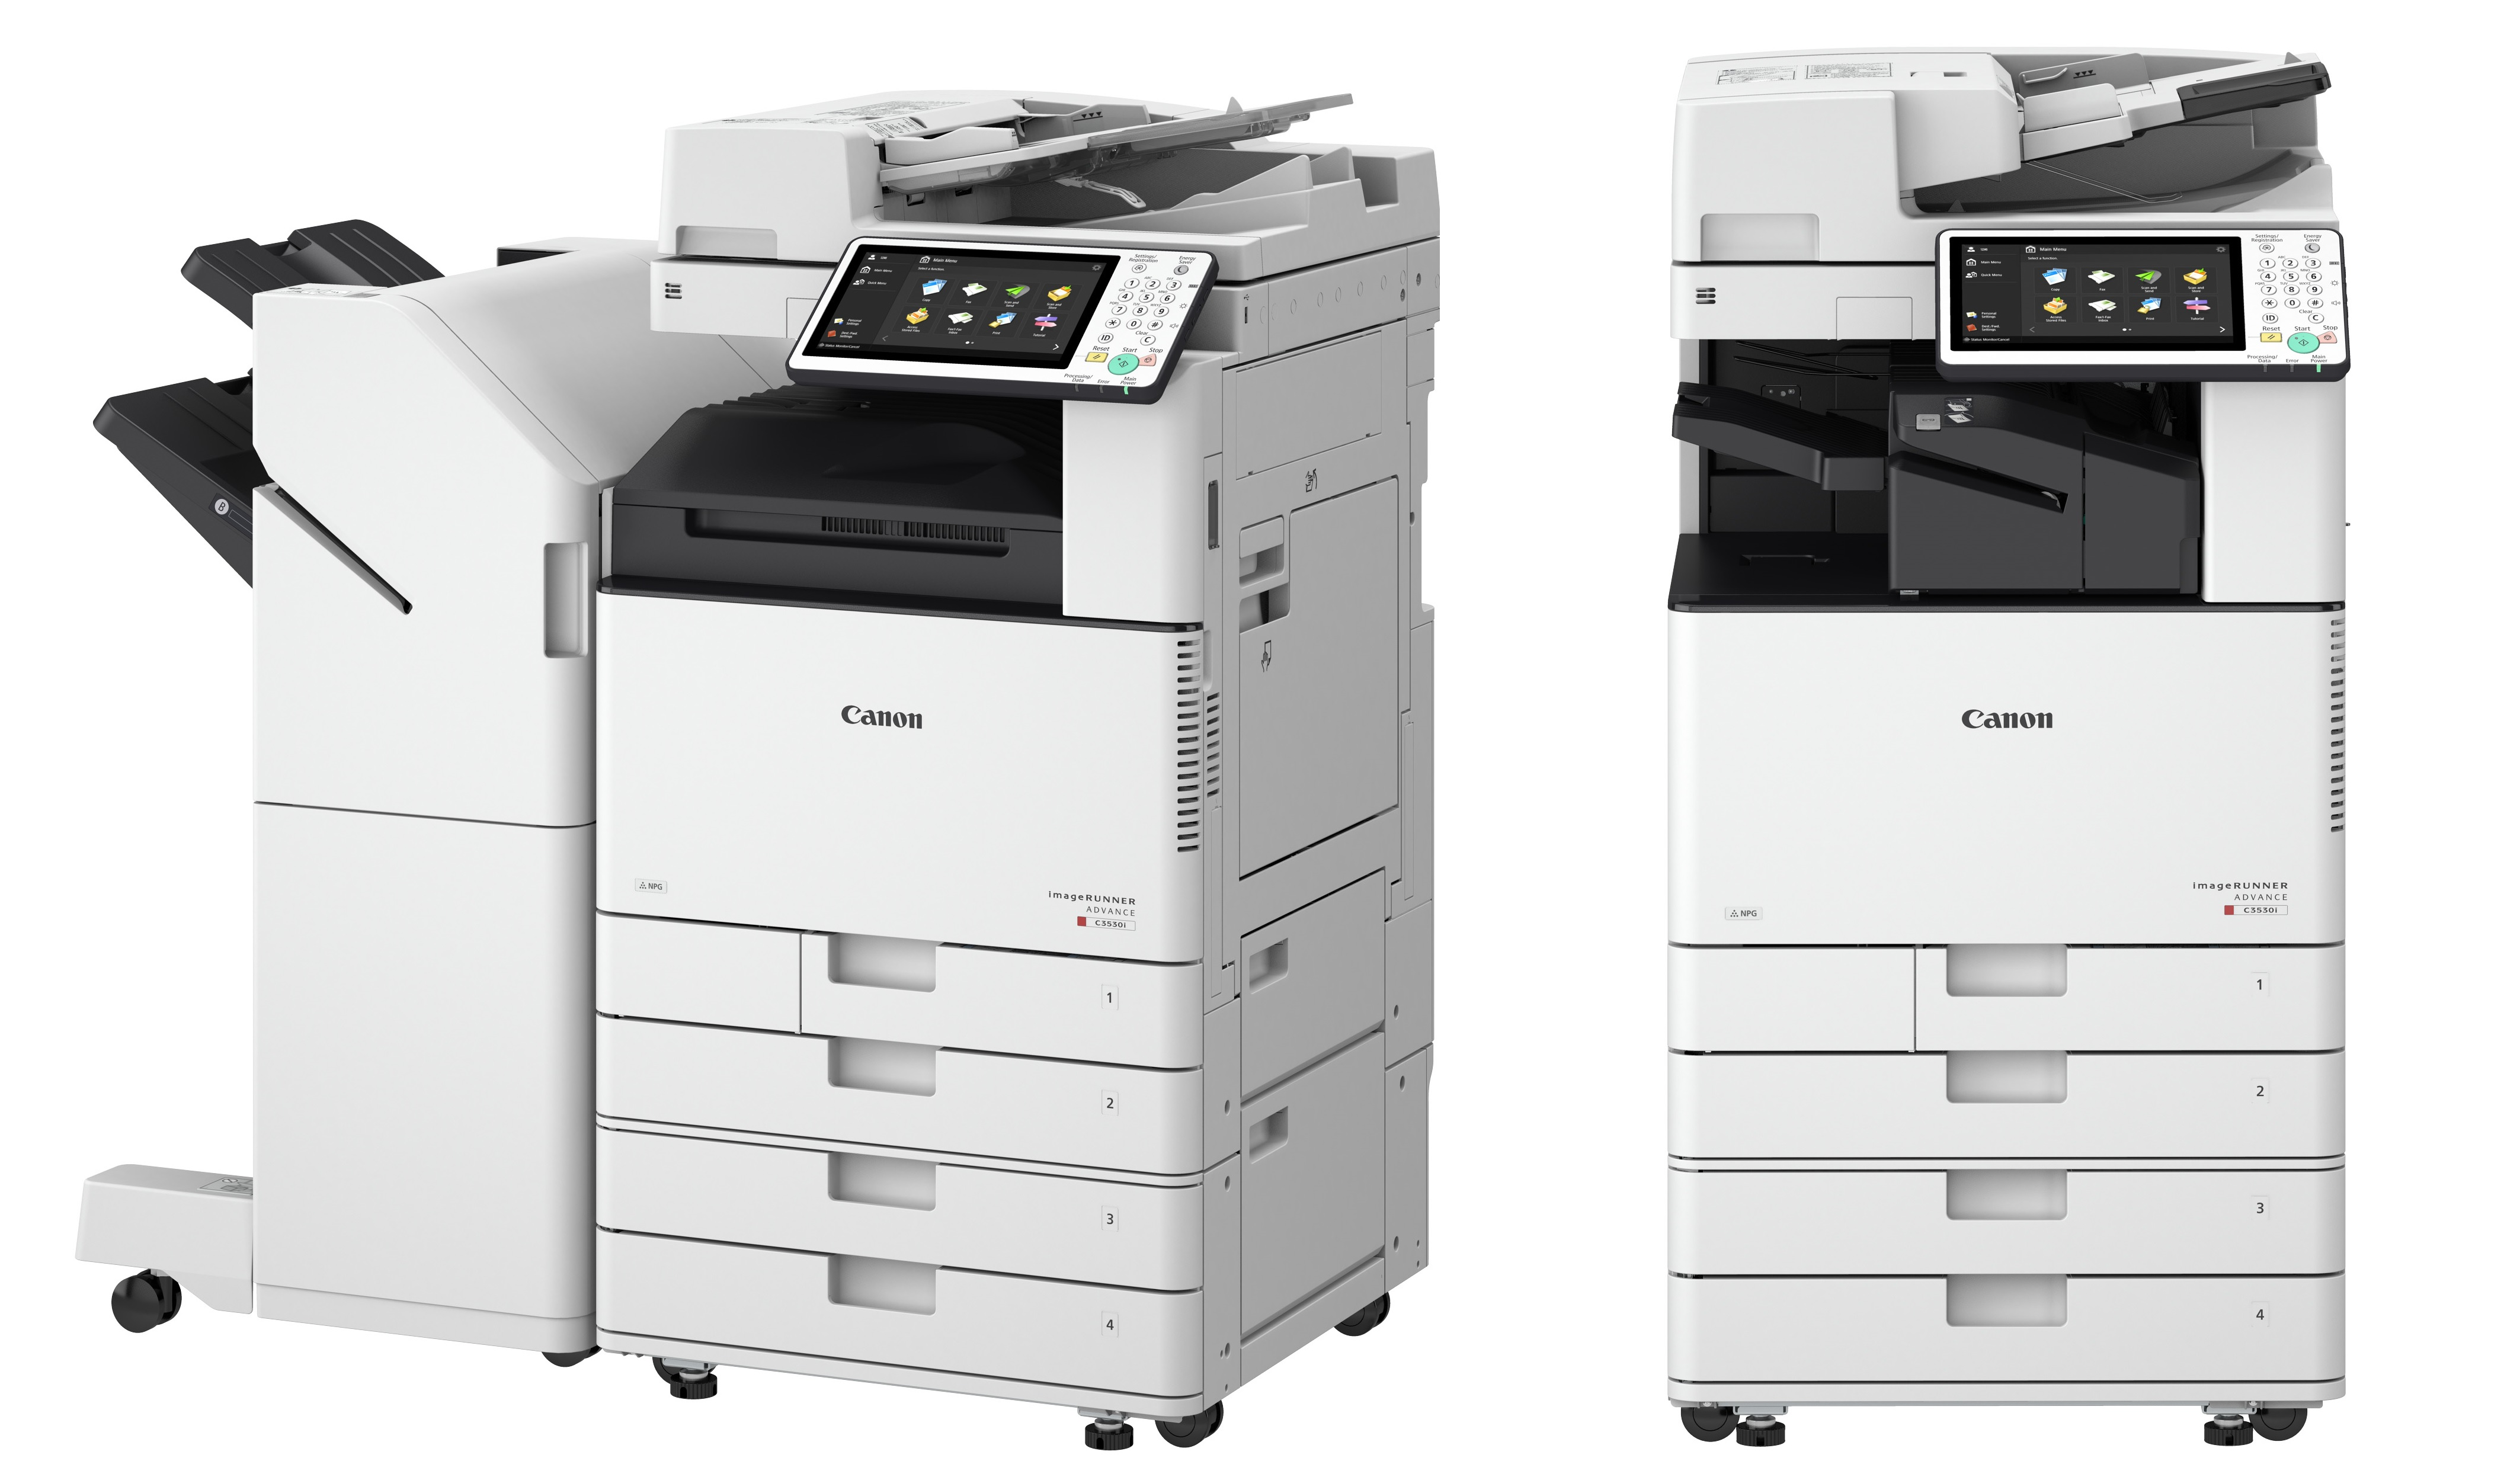 Canon Launches Third Generation Devices